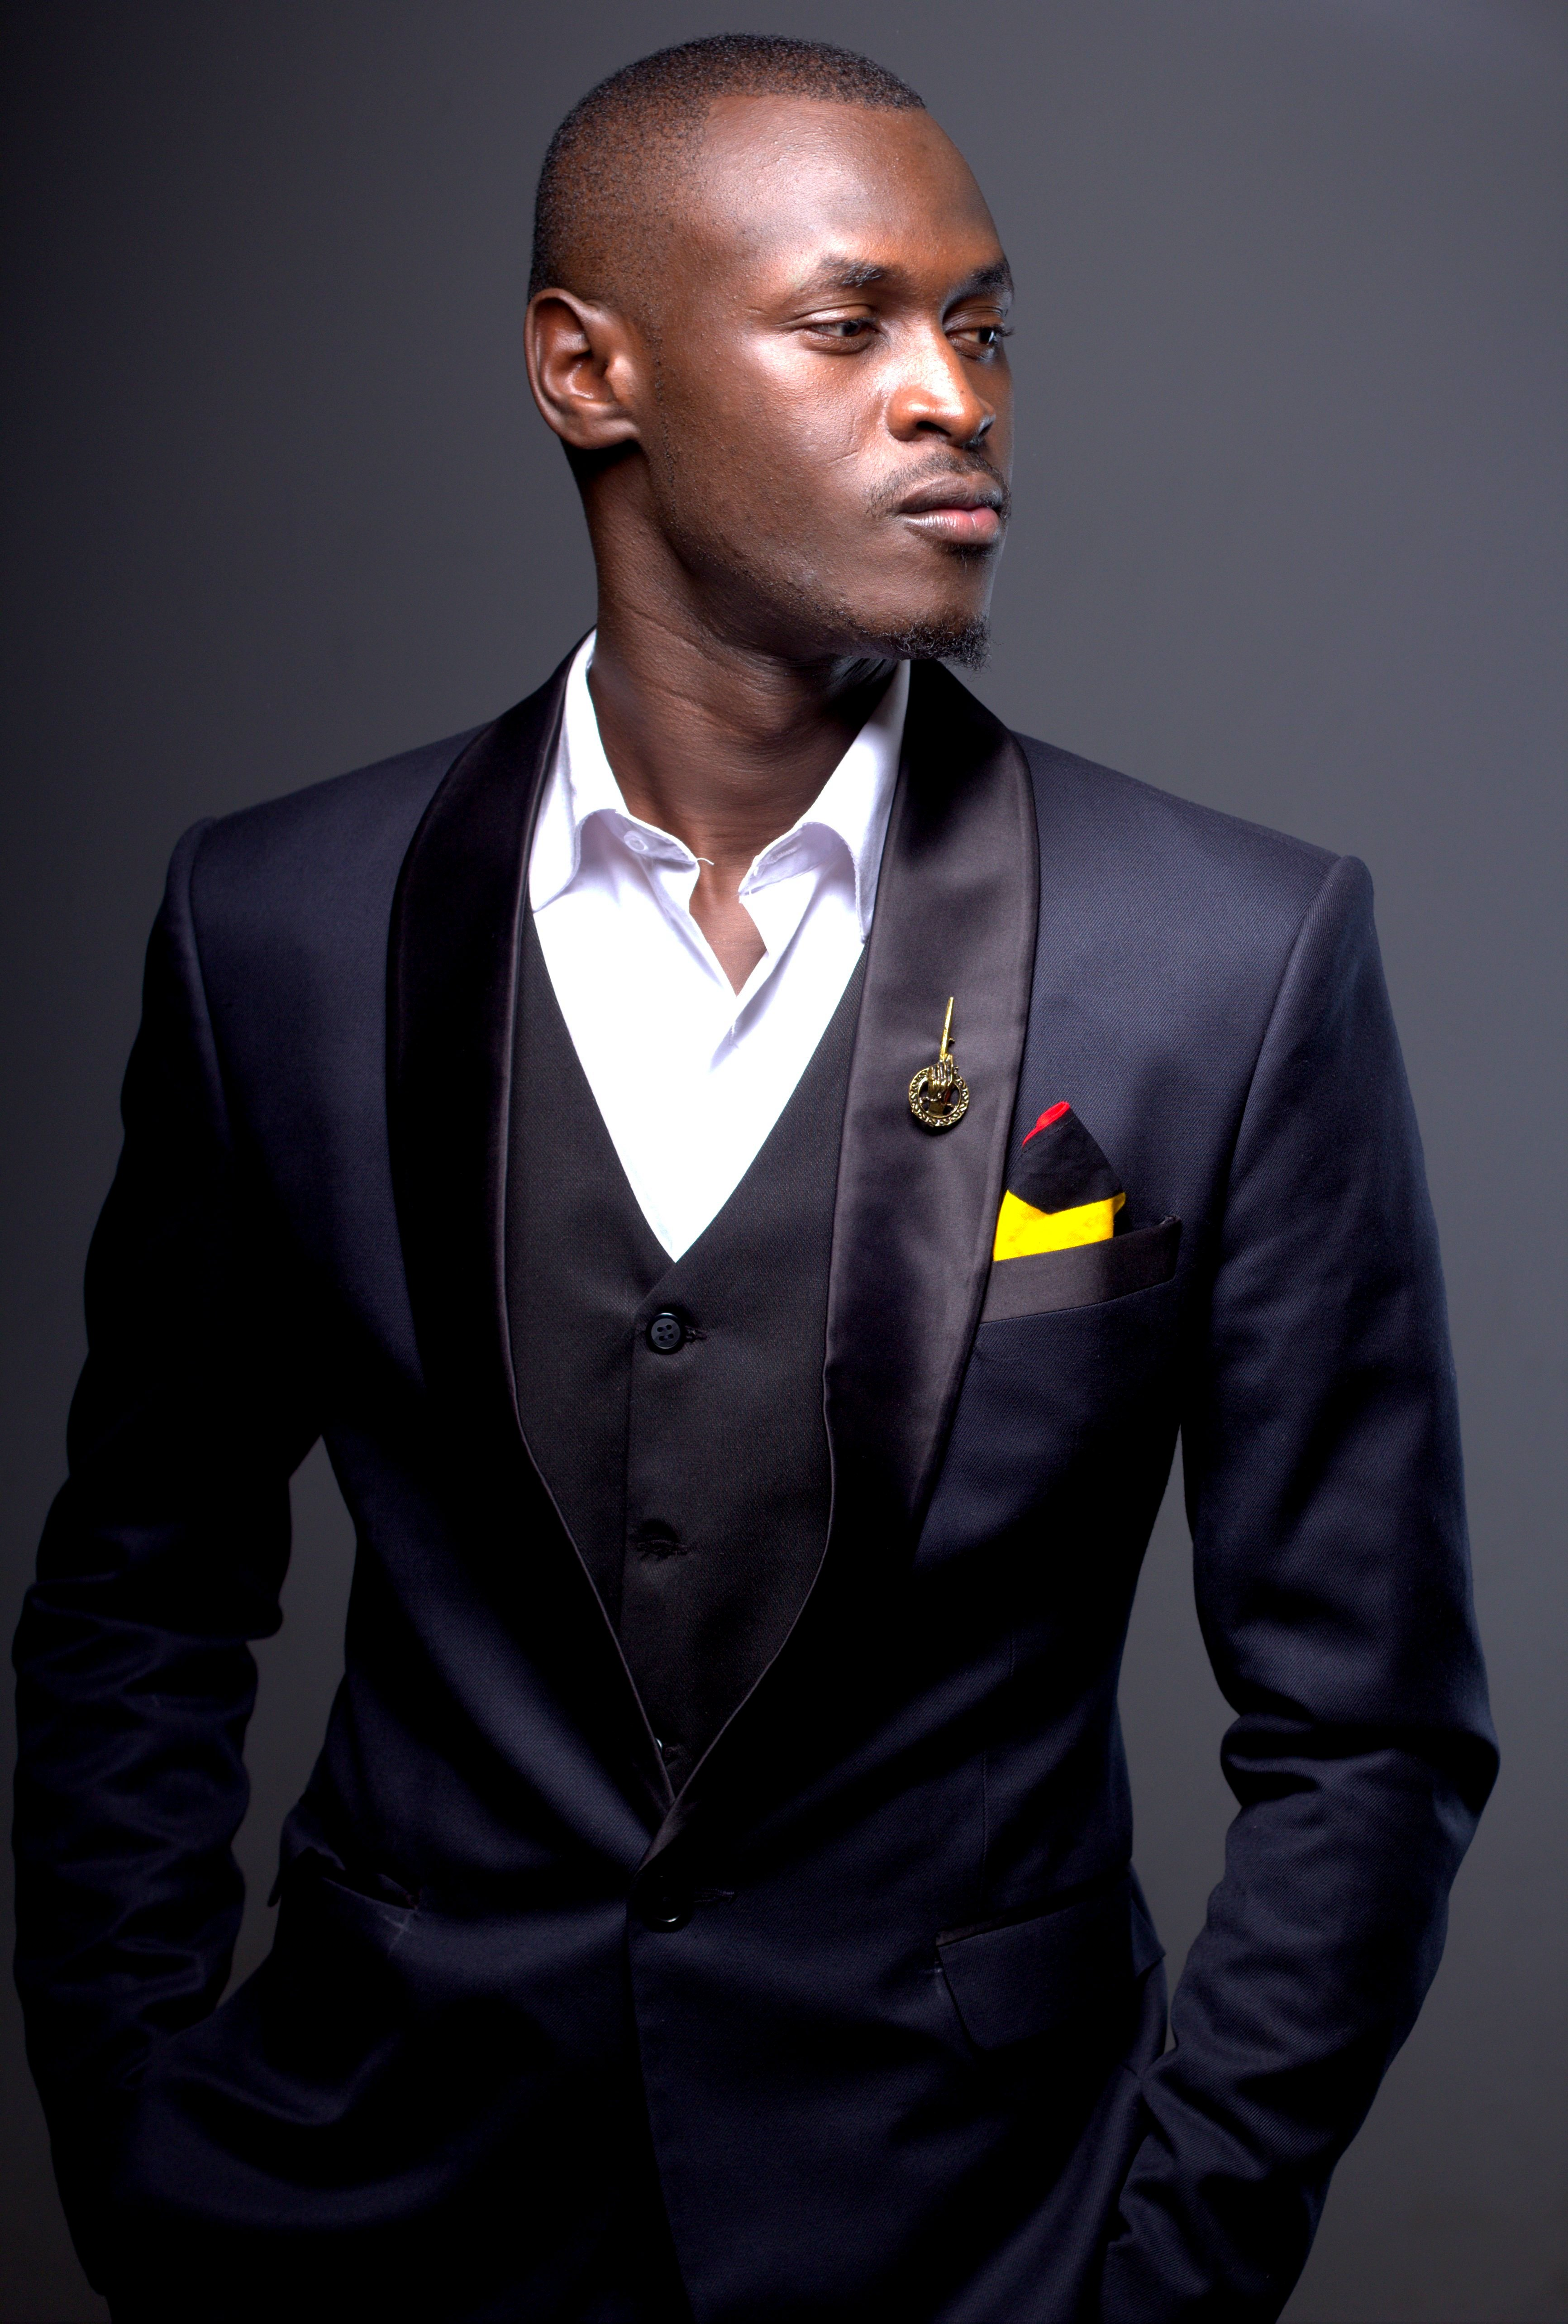 King Kaka in a nice suit